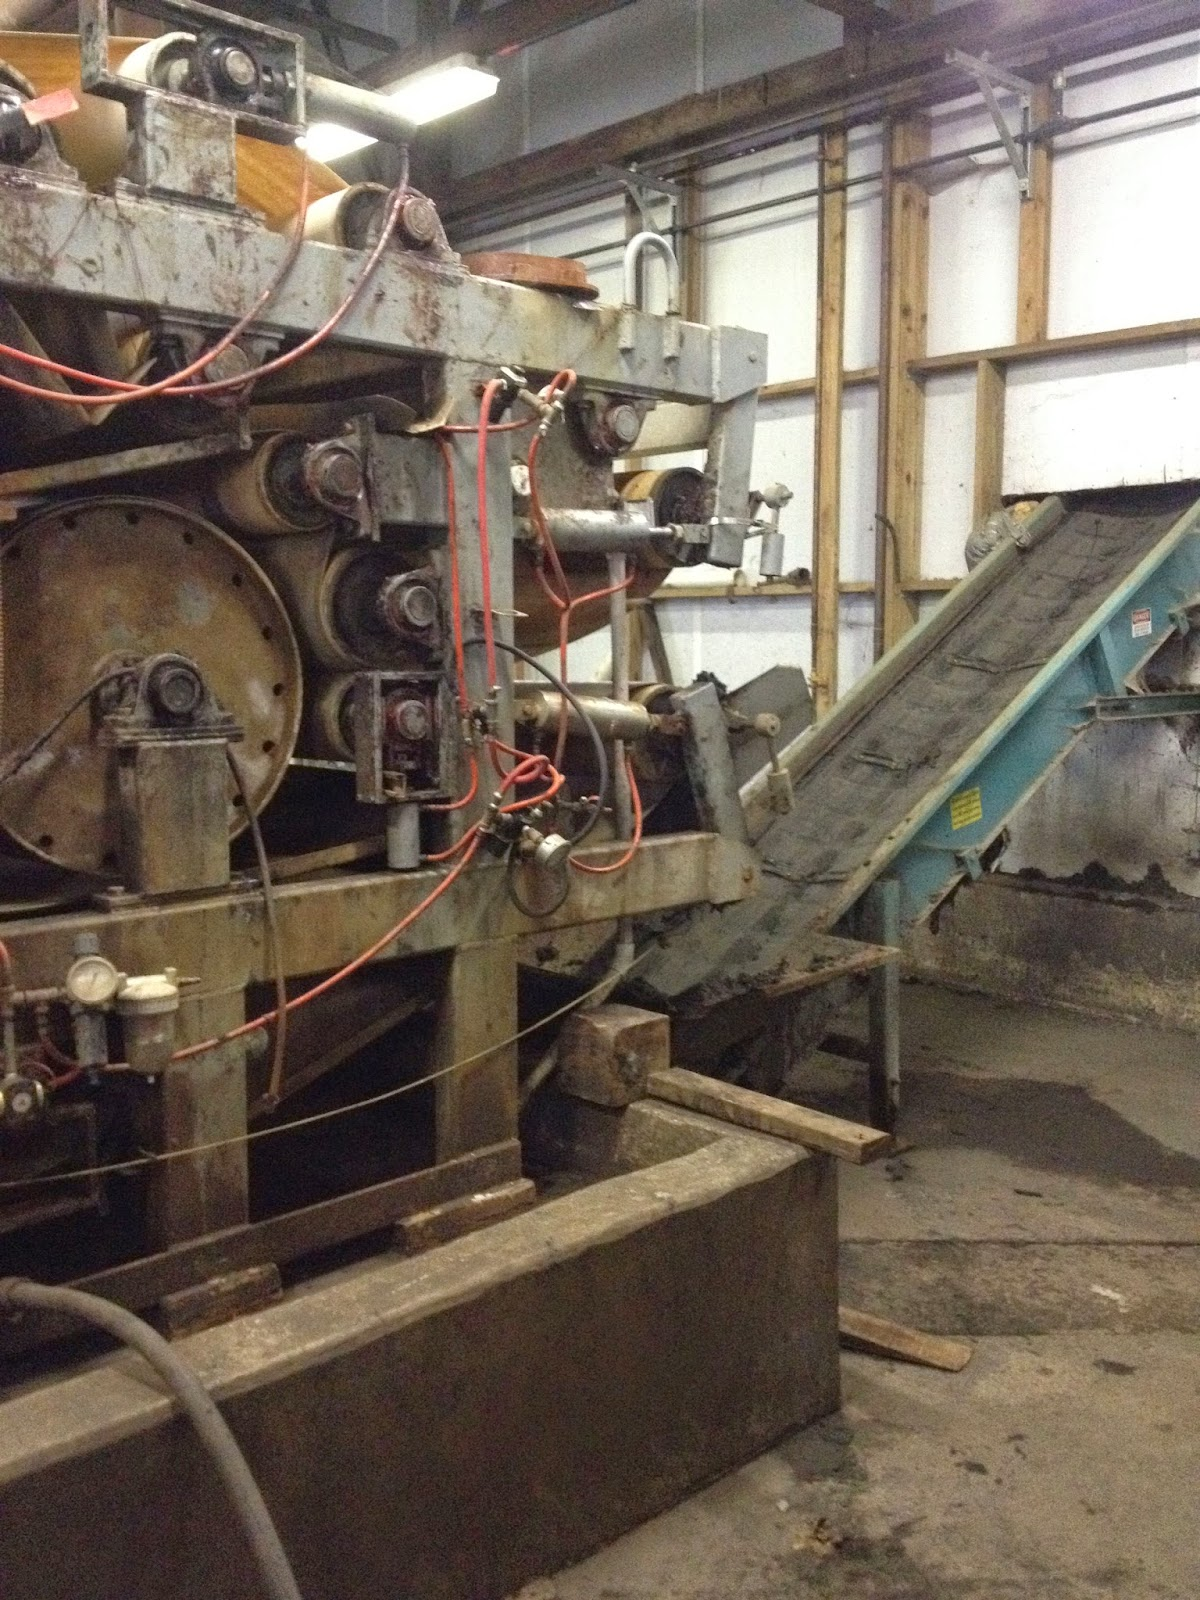 clean machine wellsville ny